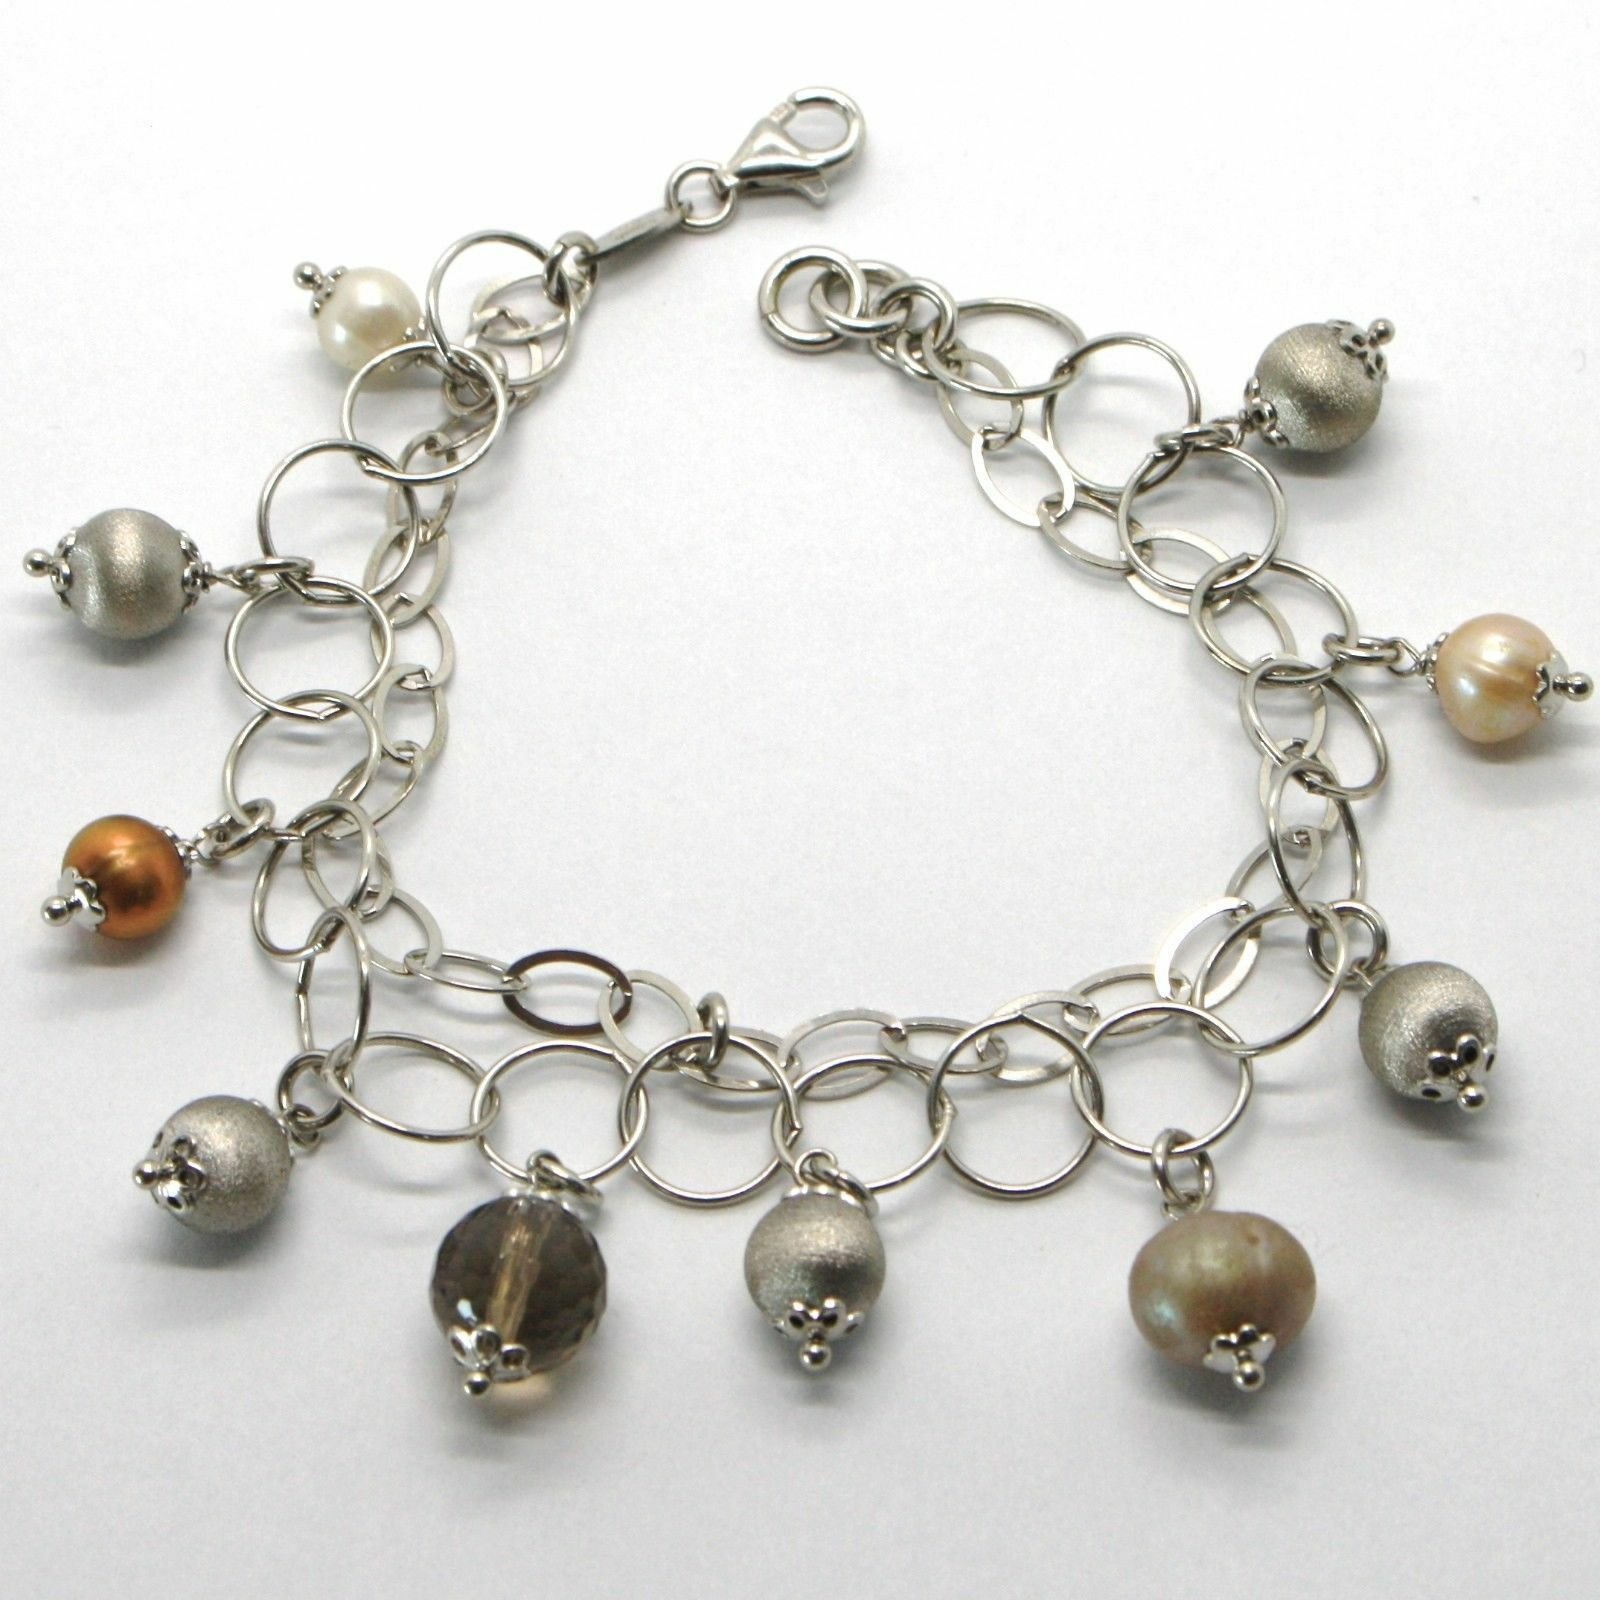 SILVER 925 BRACELET RHODIUM WITH QUARTZ AFFUMICARTO AND PEARLS OF WATER DOLCE